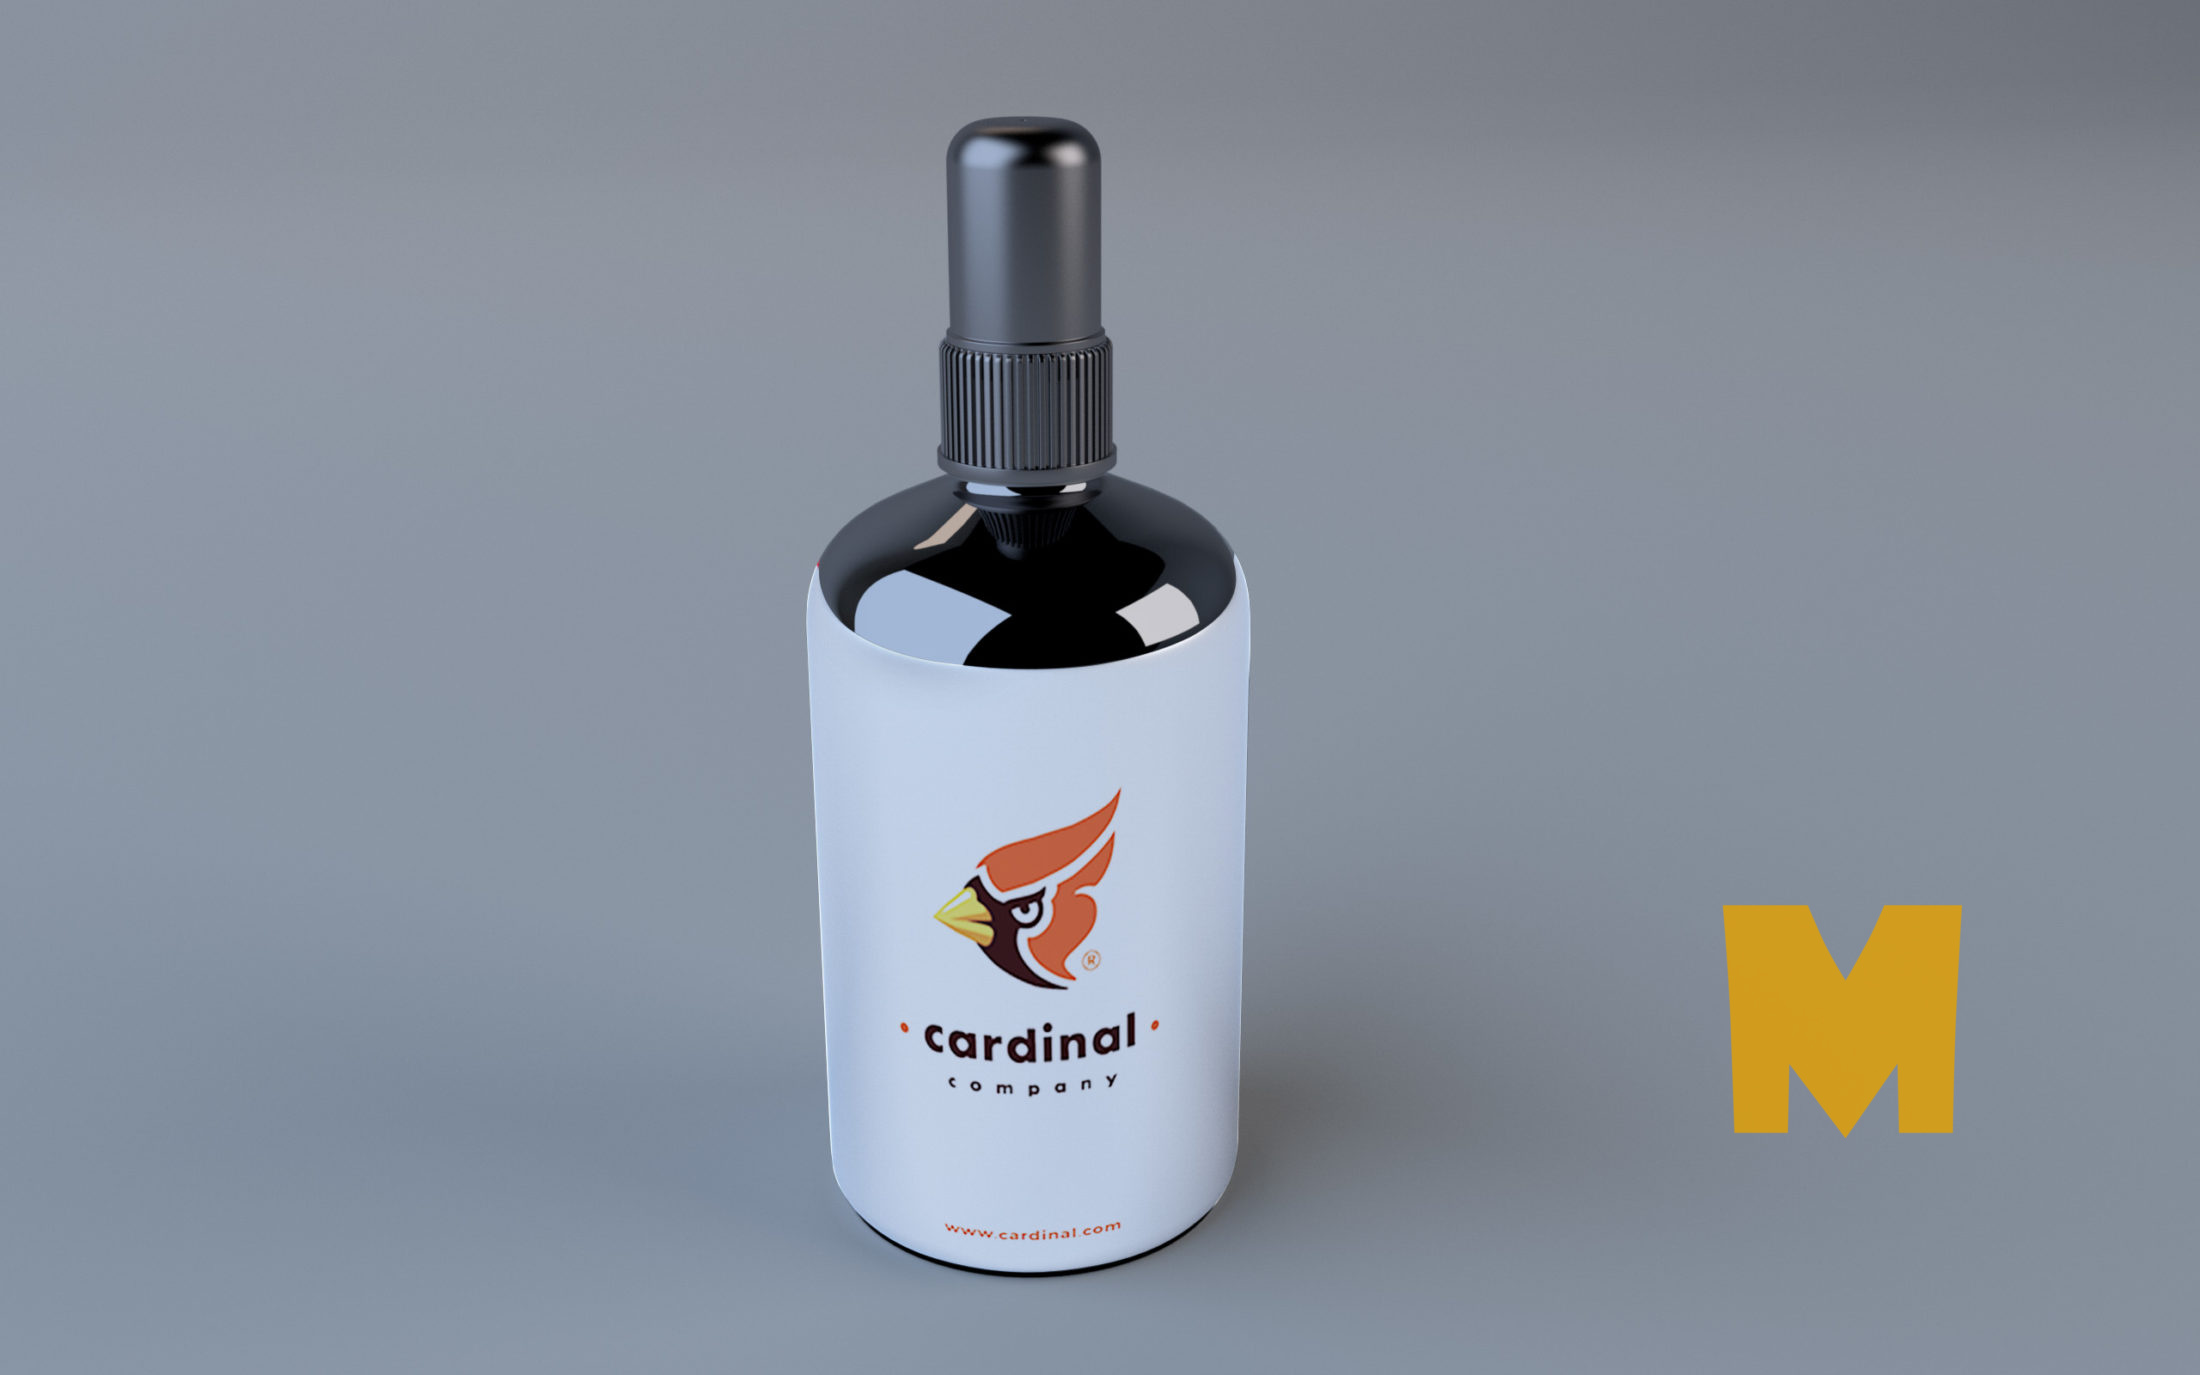 Spray Deo Bottle Mockup